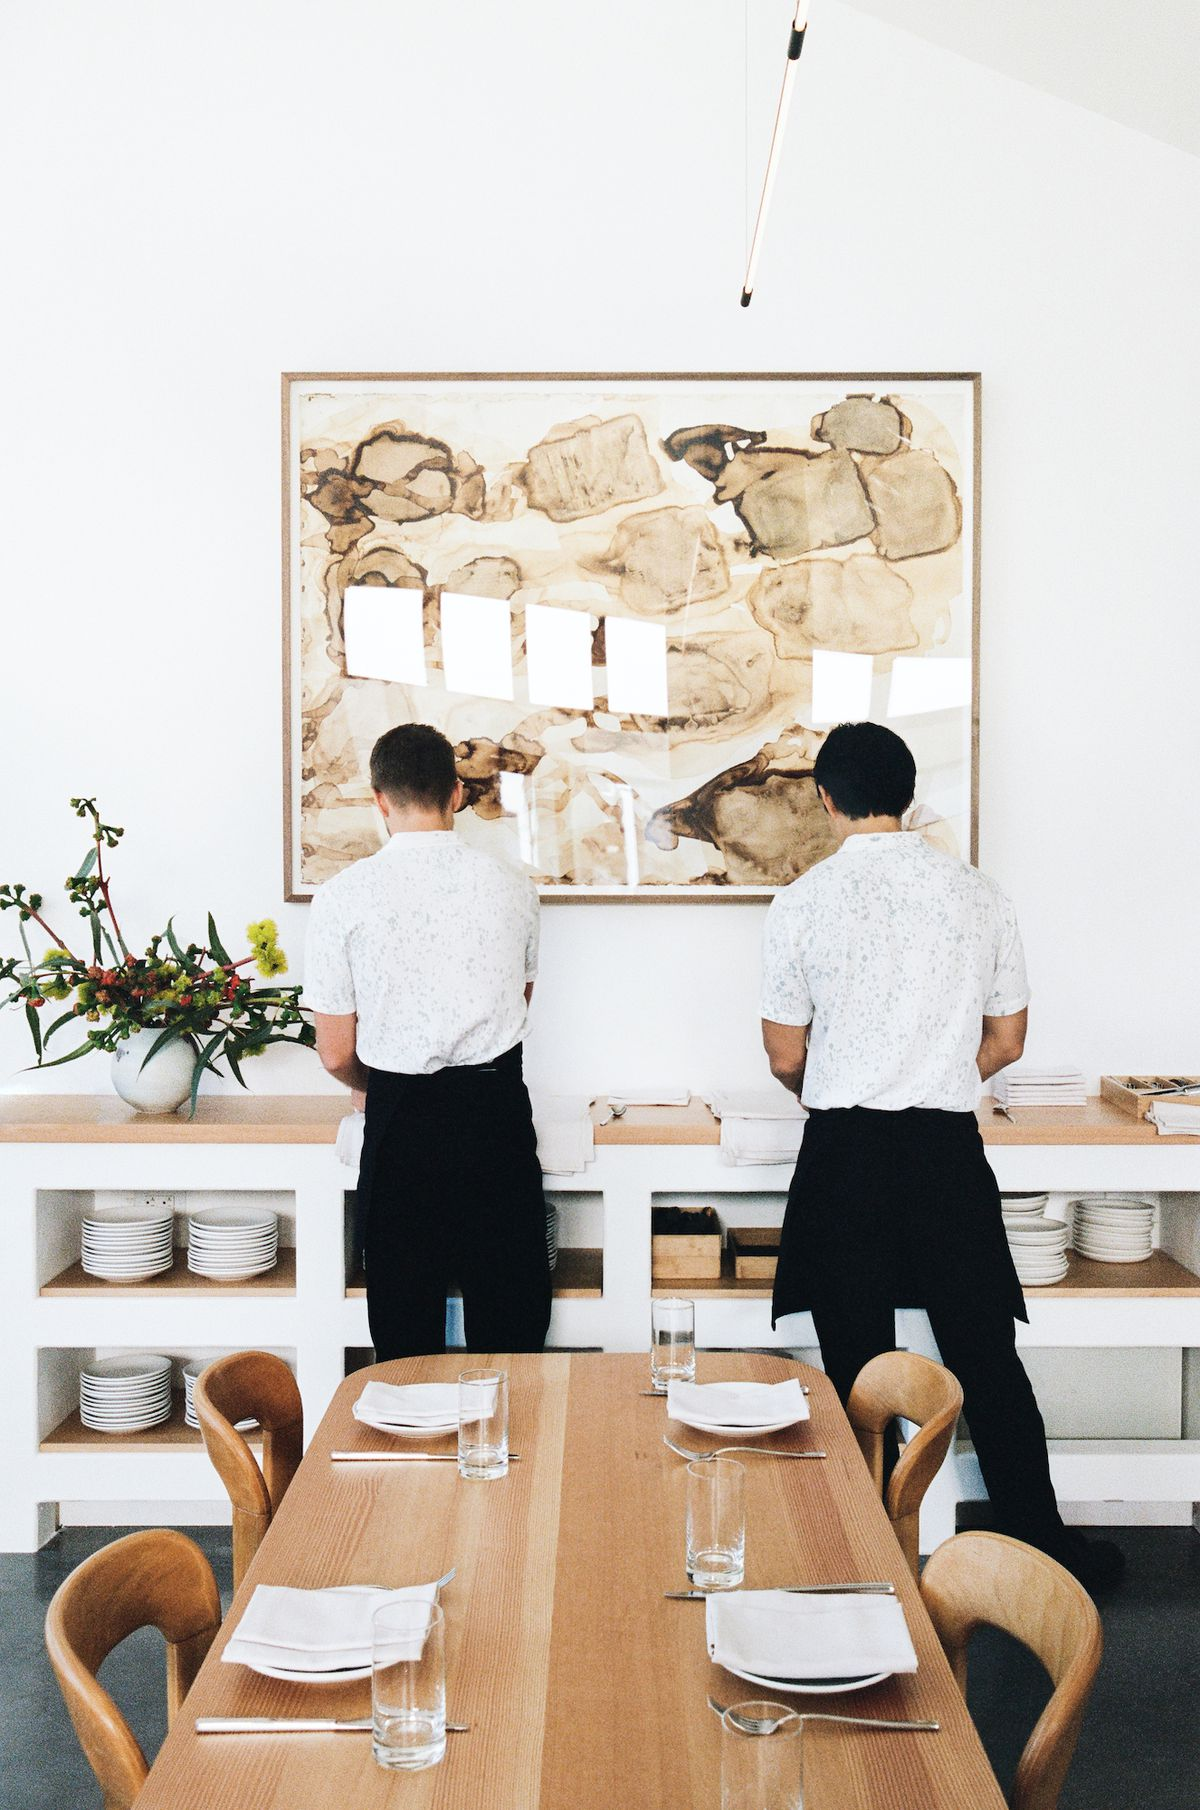 Workers at a service station inside a stark restaurant.